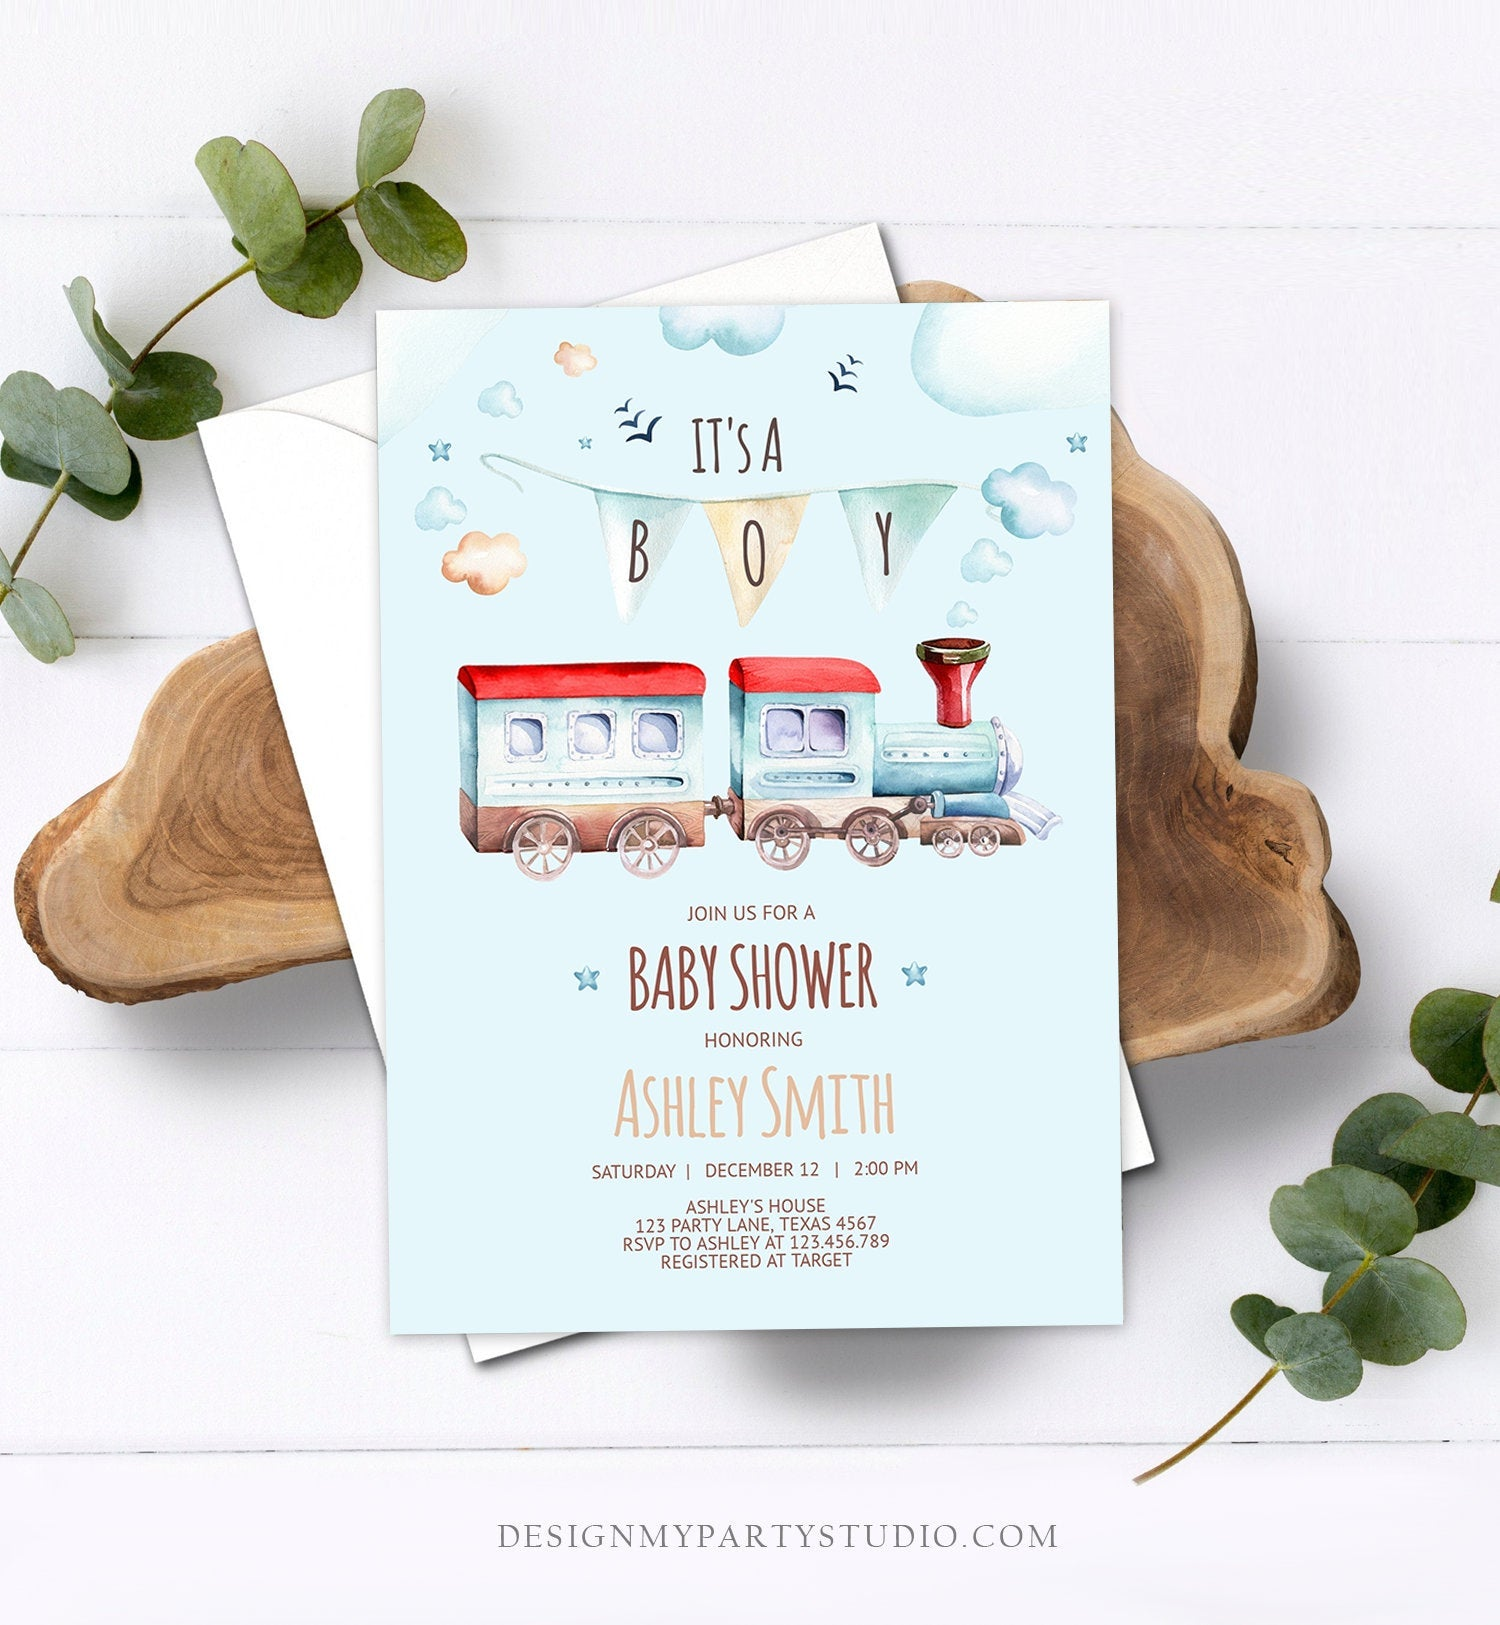 Editable Vintage Train Baby Shower Invitation Red Blue Vintage Chugga Chugga Choo Choo It's a Boy Clouds Stars Printable Template Corjl 0149